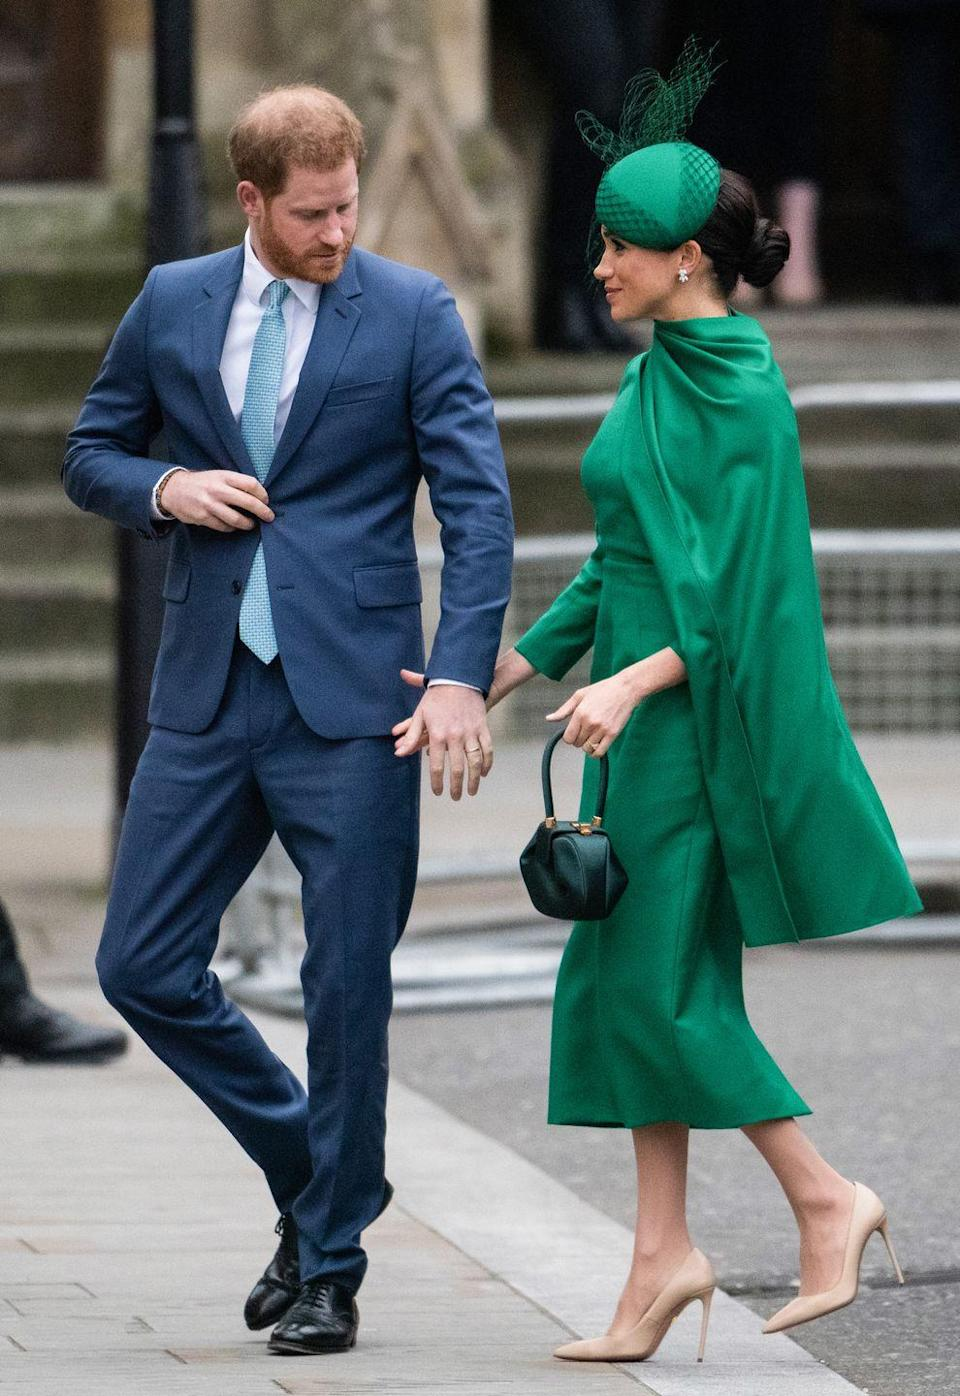 """<p>The couple marked their final public outing as senior royals in March 2020 at the <a href=""""https://www.elle.com/uk/fashion/a26783906/meghan-markle-kate-middleton-commonweath-day/"""" rel=""""nofollow noopener"""" target=""""_blank"""" data-ylk=""""slk:Commonwealth Day Service"""" class=""""link rapid-noclick-resp"""">Commonwealth Day Service</a>.</p><p>The pair were seen walking into Westmister Abbey hand-in-hand to meet with fellow royals including <a href=""""https://www.elle.com/uk/fashion/celebrity-style/articles/g16440/kate-middleton-s-style-file/"""" rel=""""nofollow noopener"""" target=""""_blank"""" data-ylk=""""slk:Kate Middleton"""" class=""""link rapid-noclick-resp"""">Kate Middleton</a> and Prince William. </p>"""